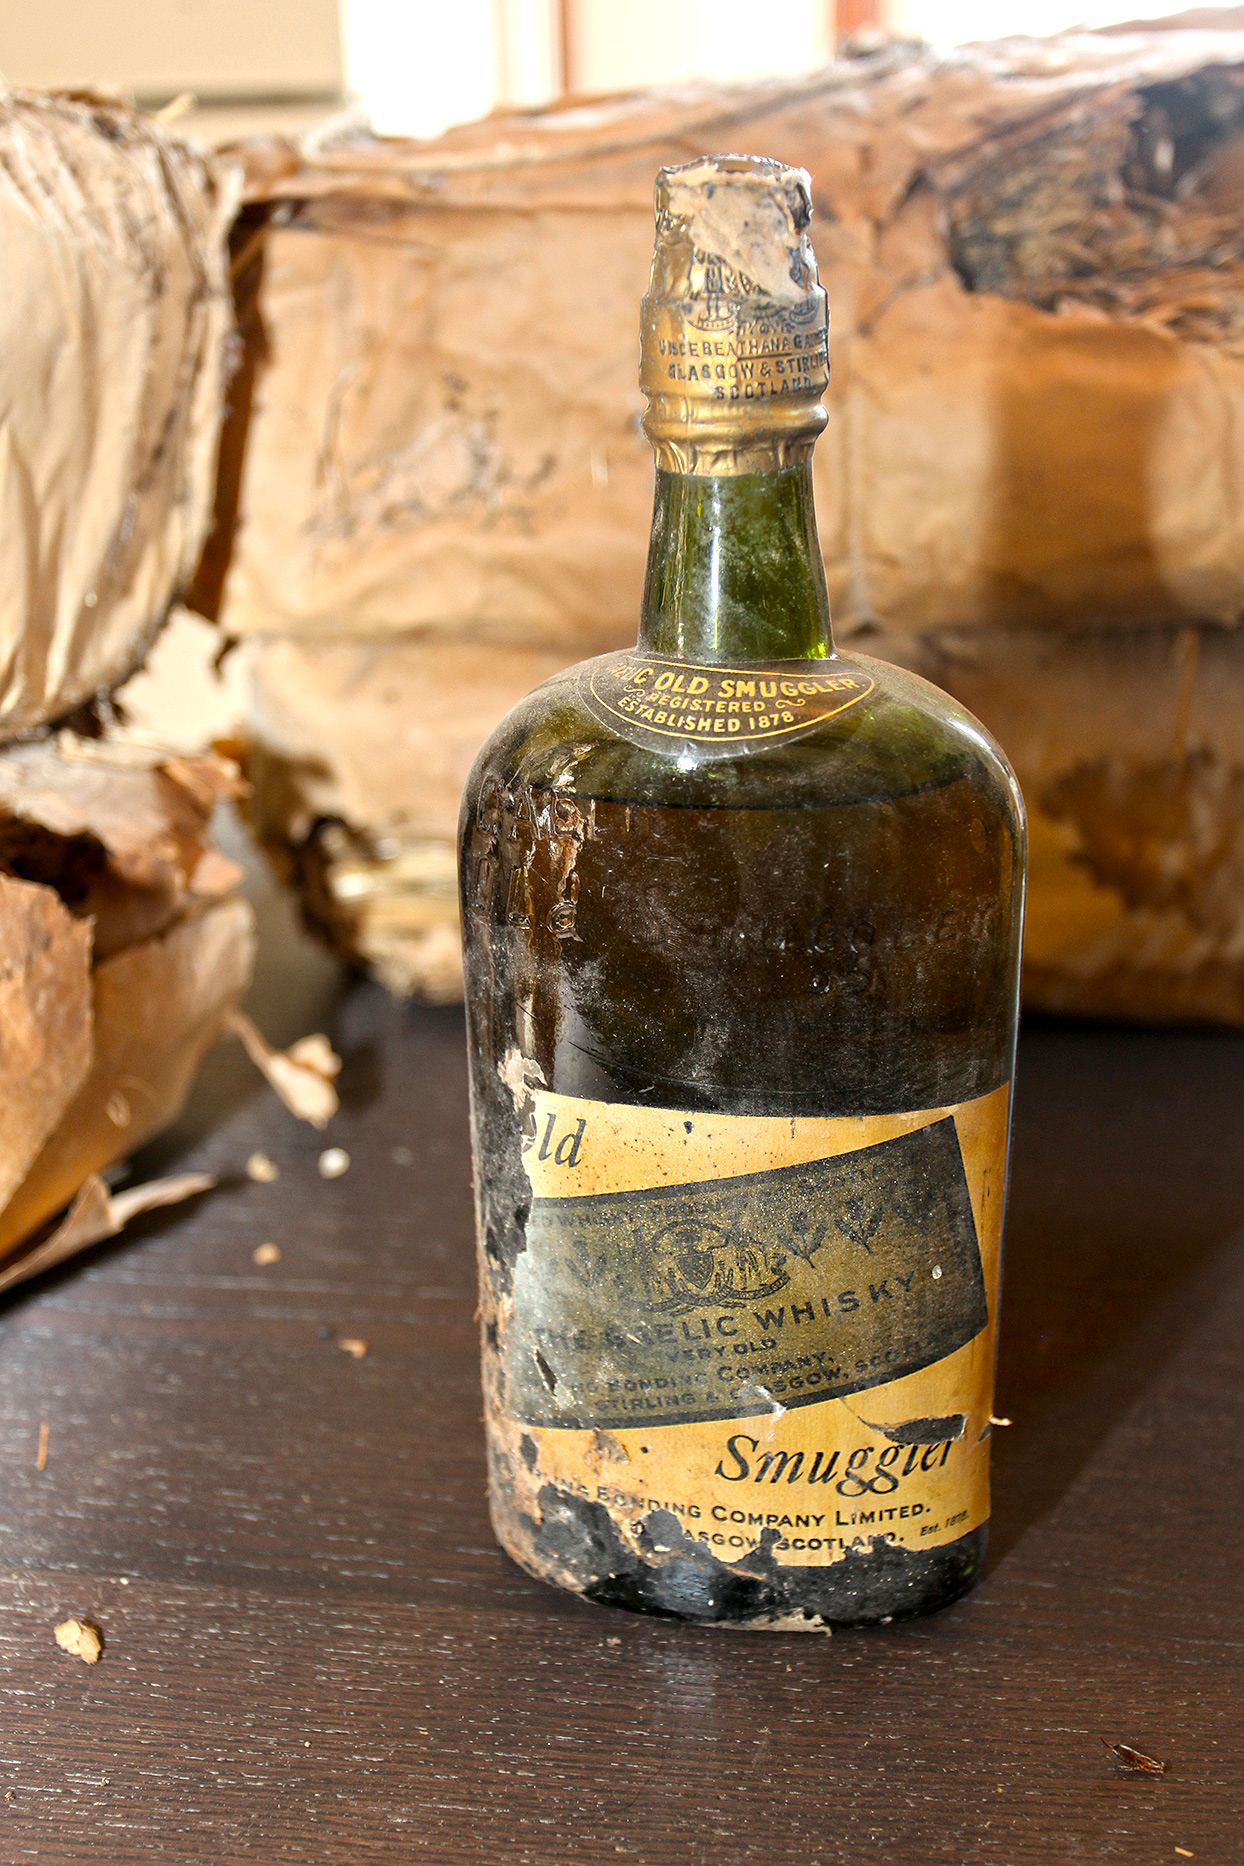 century-old imported Old Smuggler Gaelic Whiskey bottle found in prohibition-era home